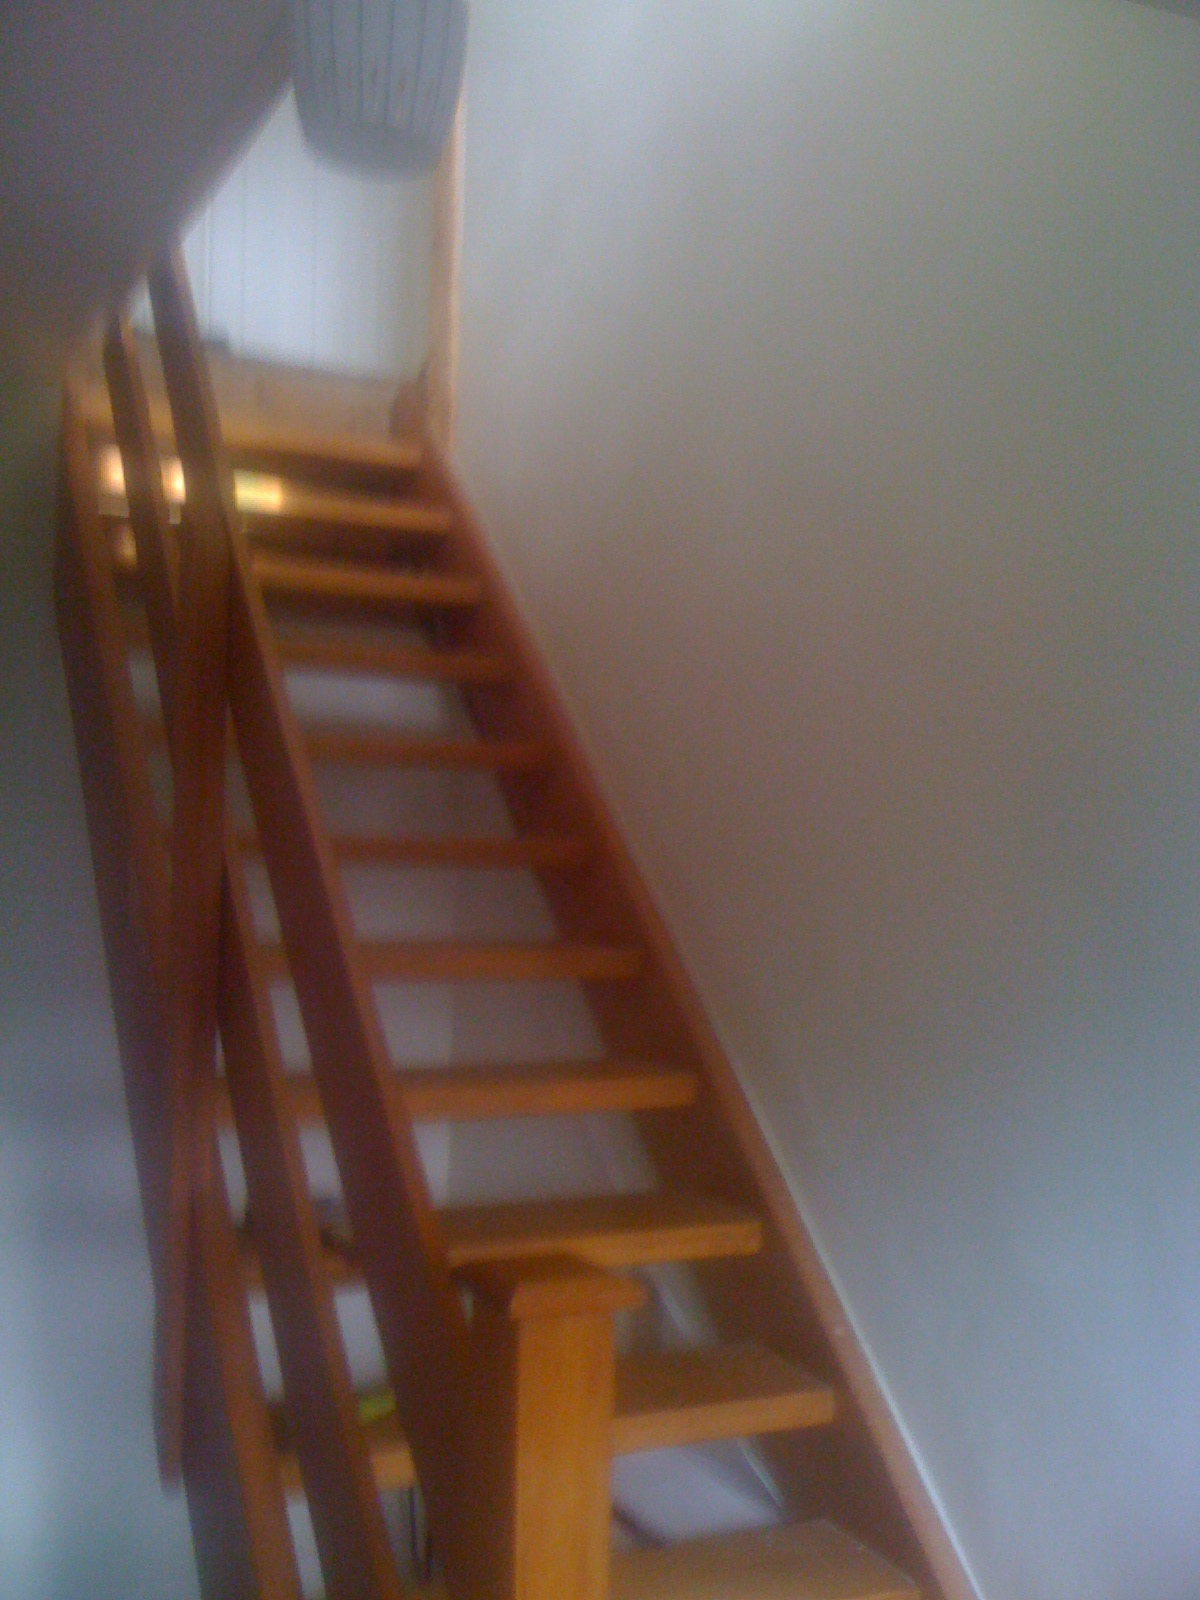 1980's Staircase- not meeting current legislation